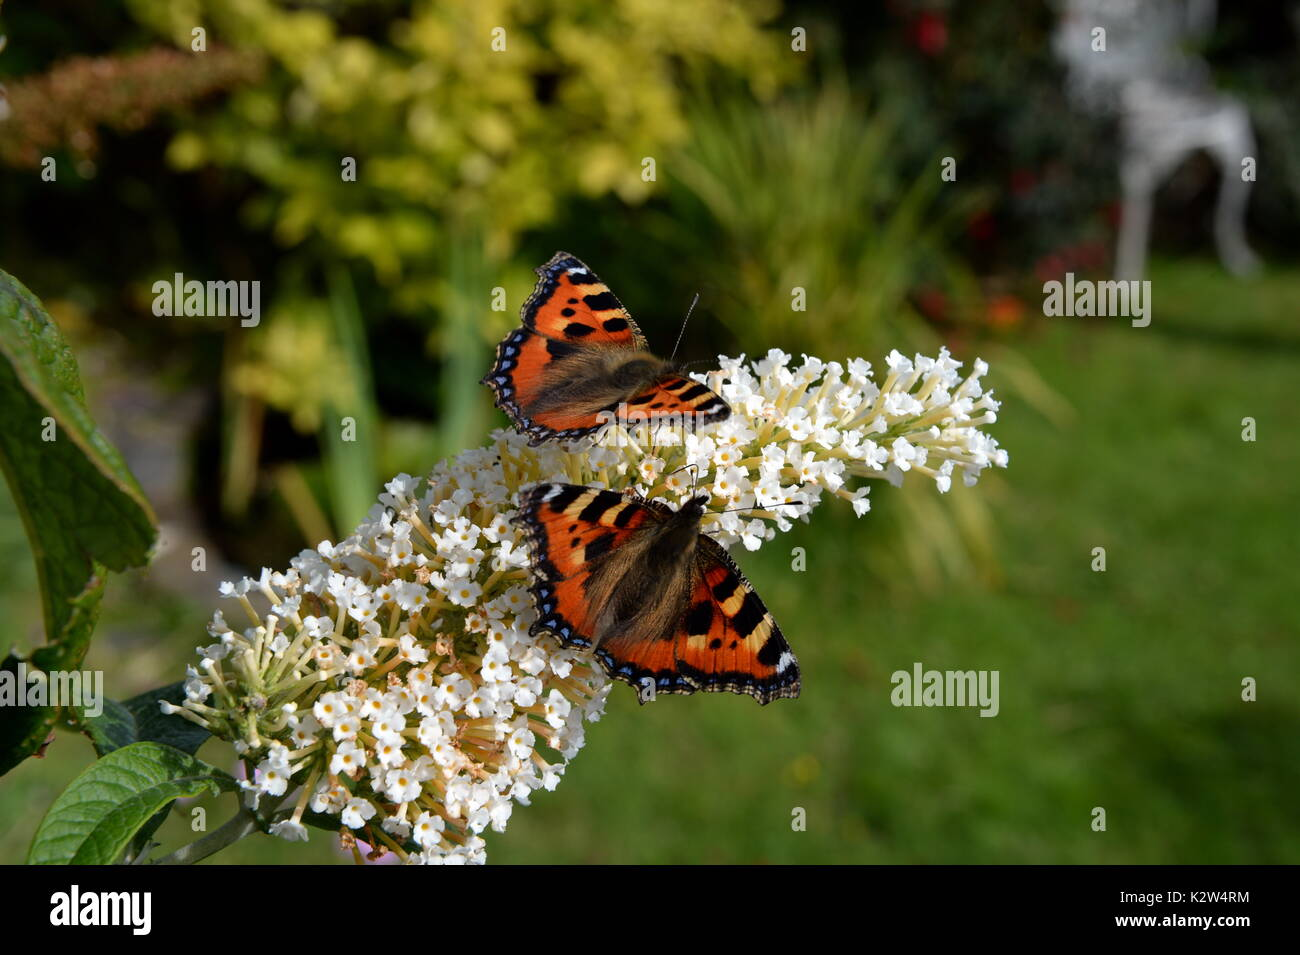 two small tortoiseshell butterflies on the butterfly bush -buddleia. Garden background - Stock Image